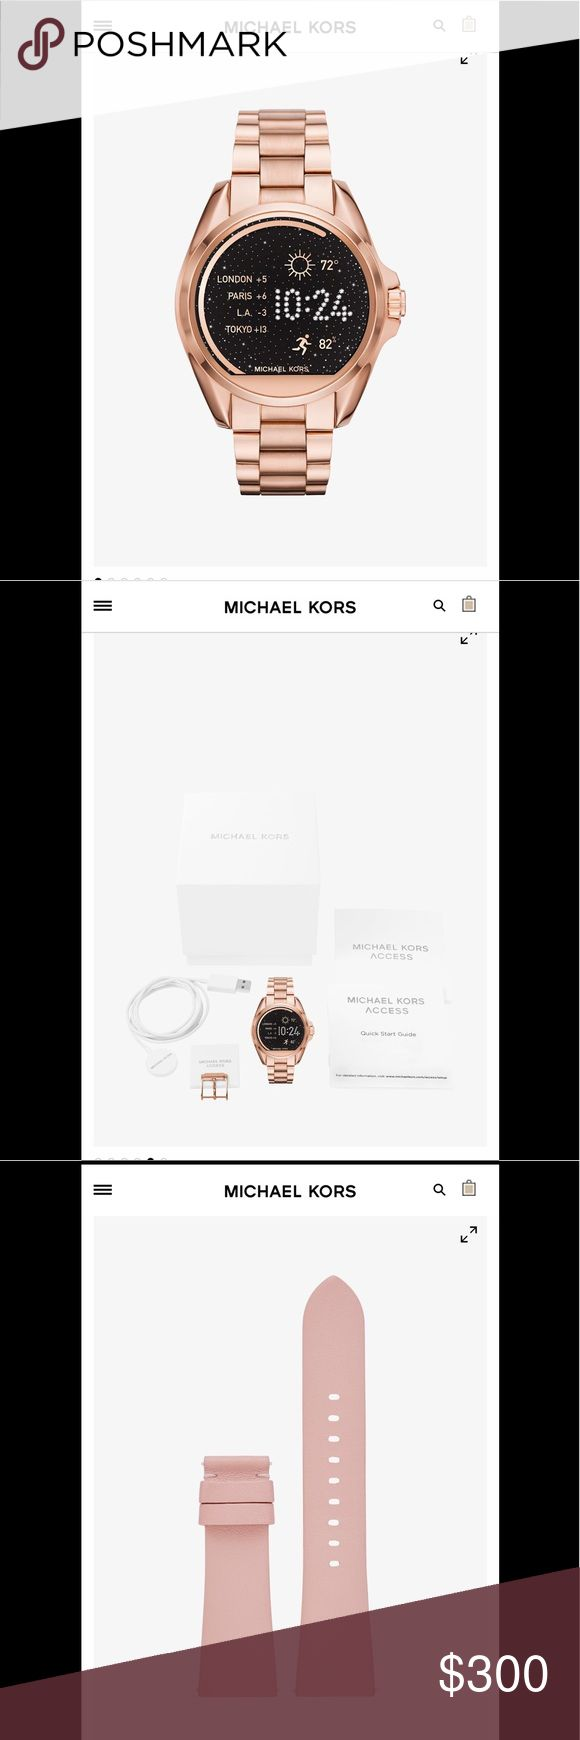 Michael Kors Rose Gold Smartwatch New, never used Bradbury rose gold Michael Kors Smart Watch. Extra watch and include. KORS Michael Kors Accessories Watches